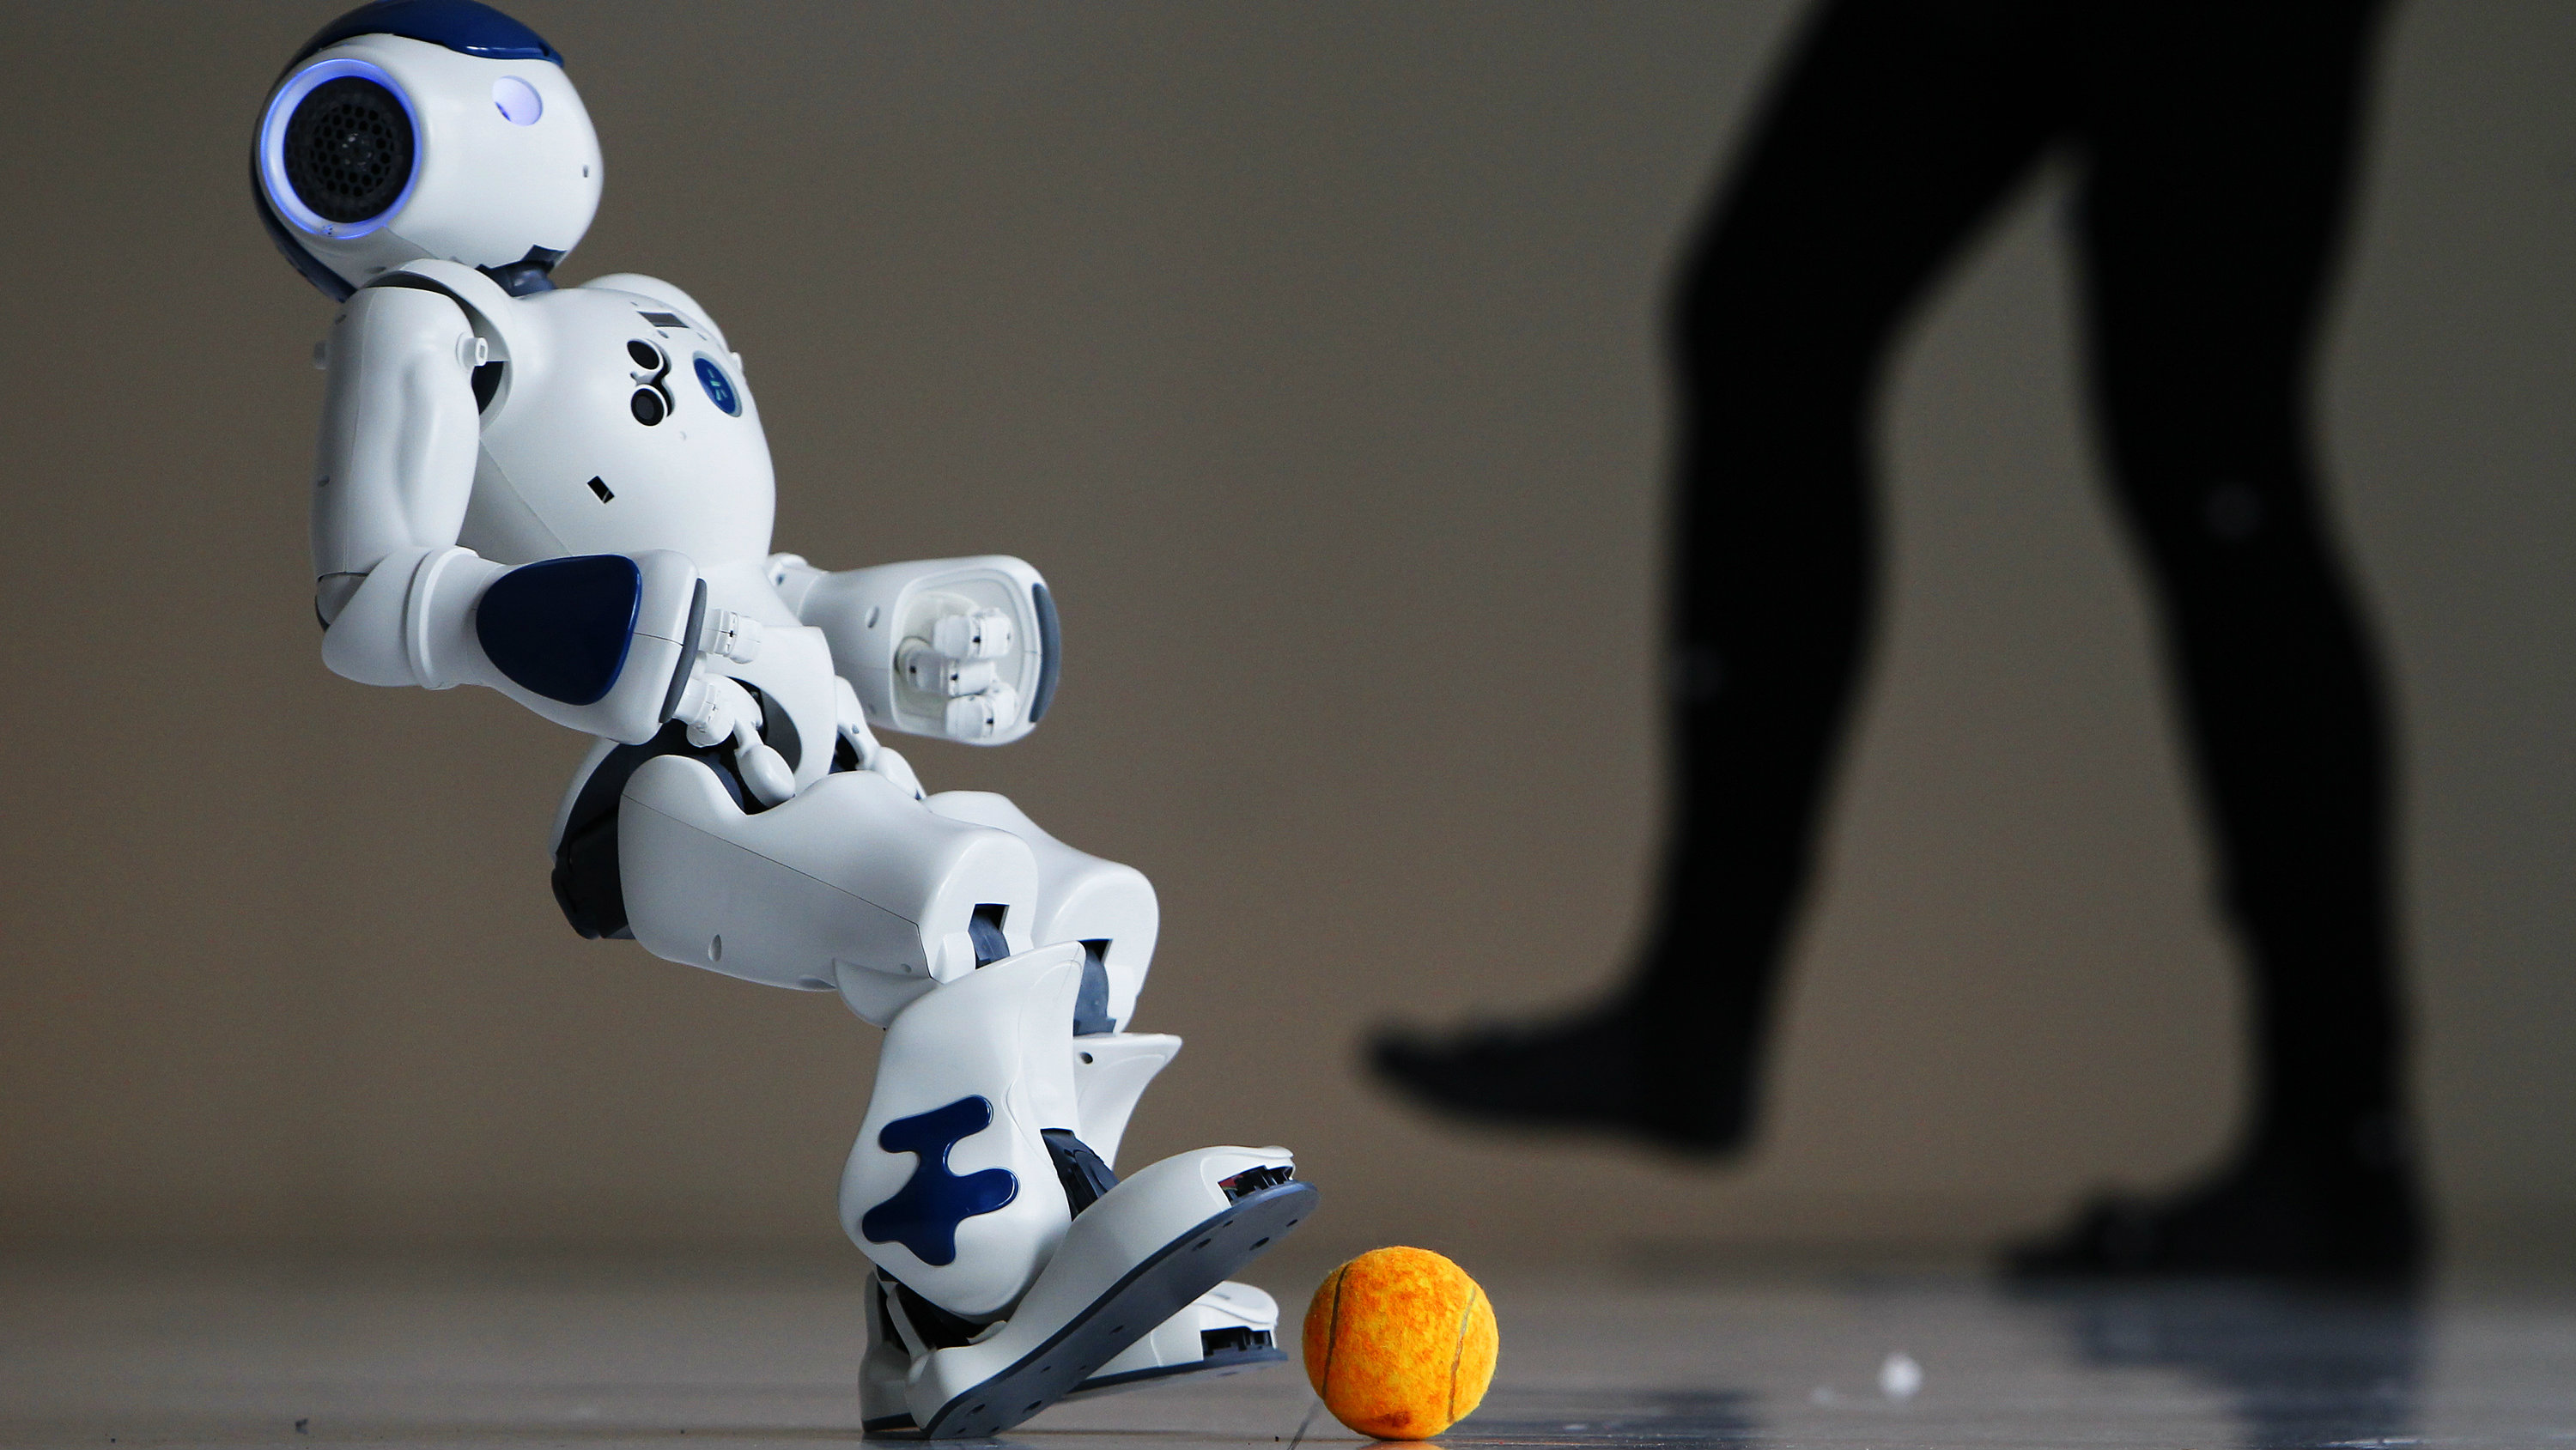 A robot from Android FC, a three-robot soccer team from the School of Infomatics at the University of Edinburgh, shows off its skills during a photocall for their upcoming show in the Edinburgh International Science Festival in Edinburgh, Scotland April 1, 2010. The robot soccer players are fully autonomous and have embedded processors that enable them to make sense of their surroundings and react to the movements of other players. REUTERS/David Moir(BRITAIN)